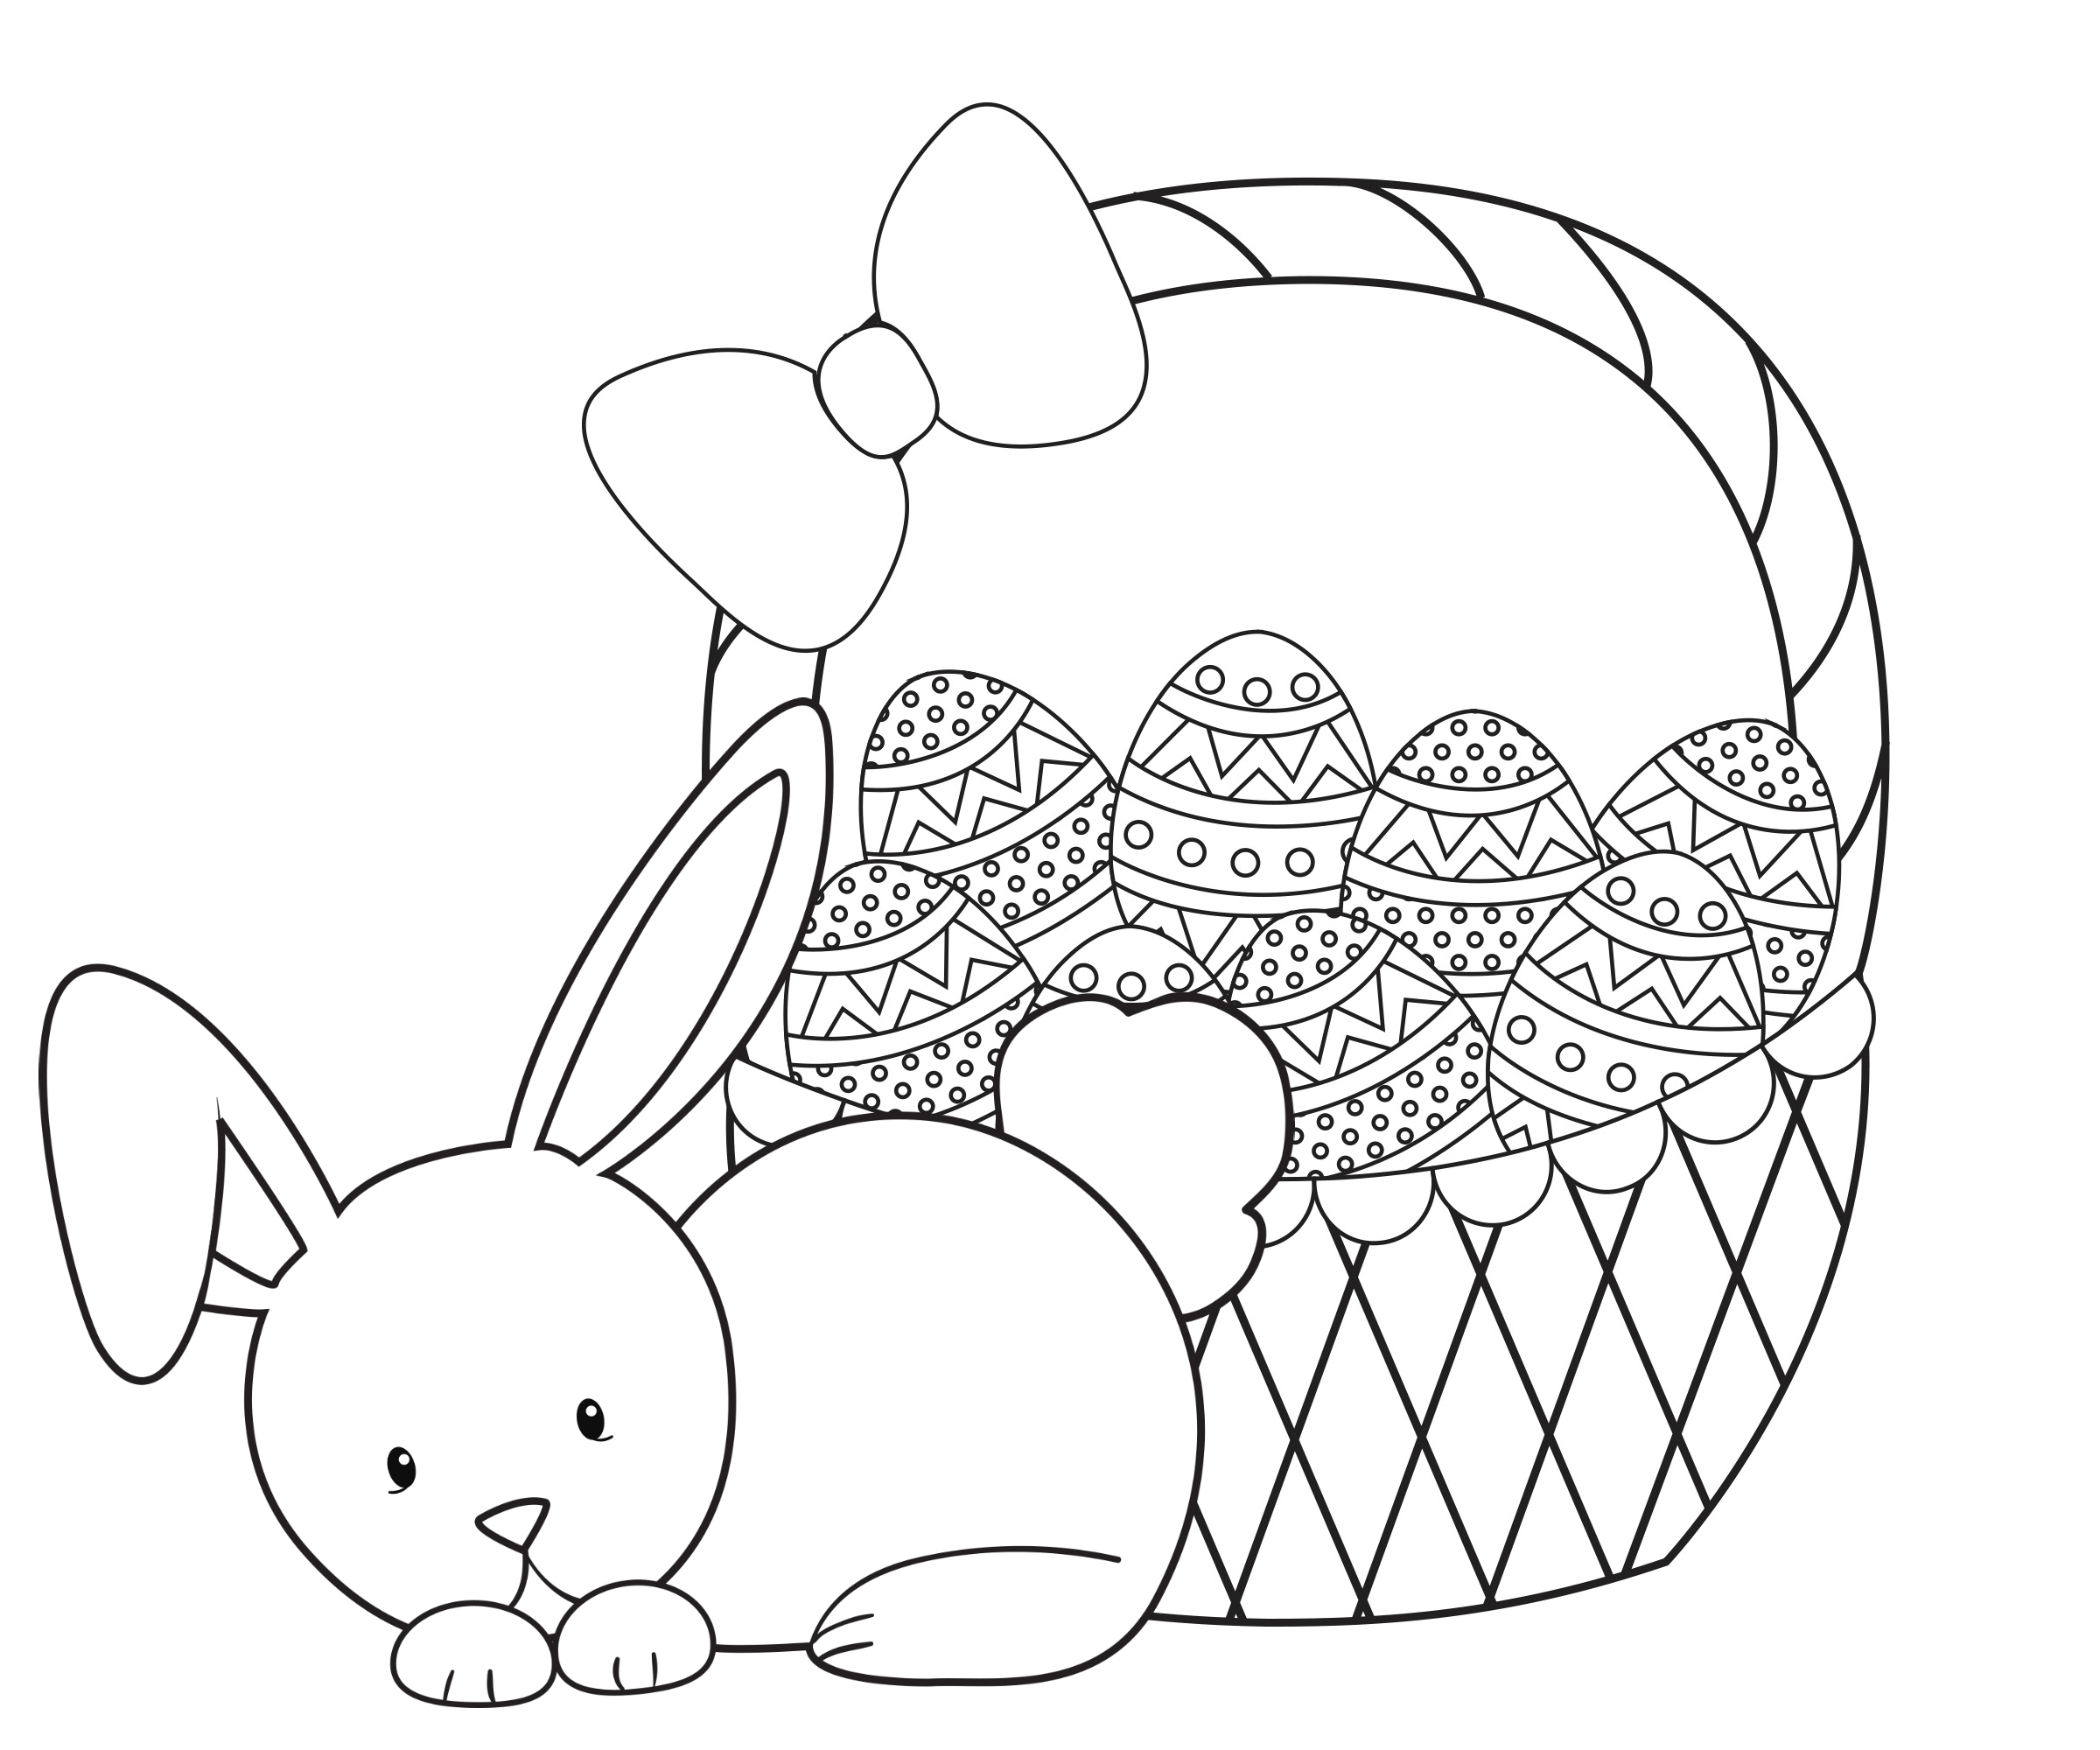 Coloring Pages for Kids for Easter Download 10r - Free Download